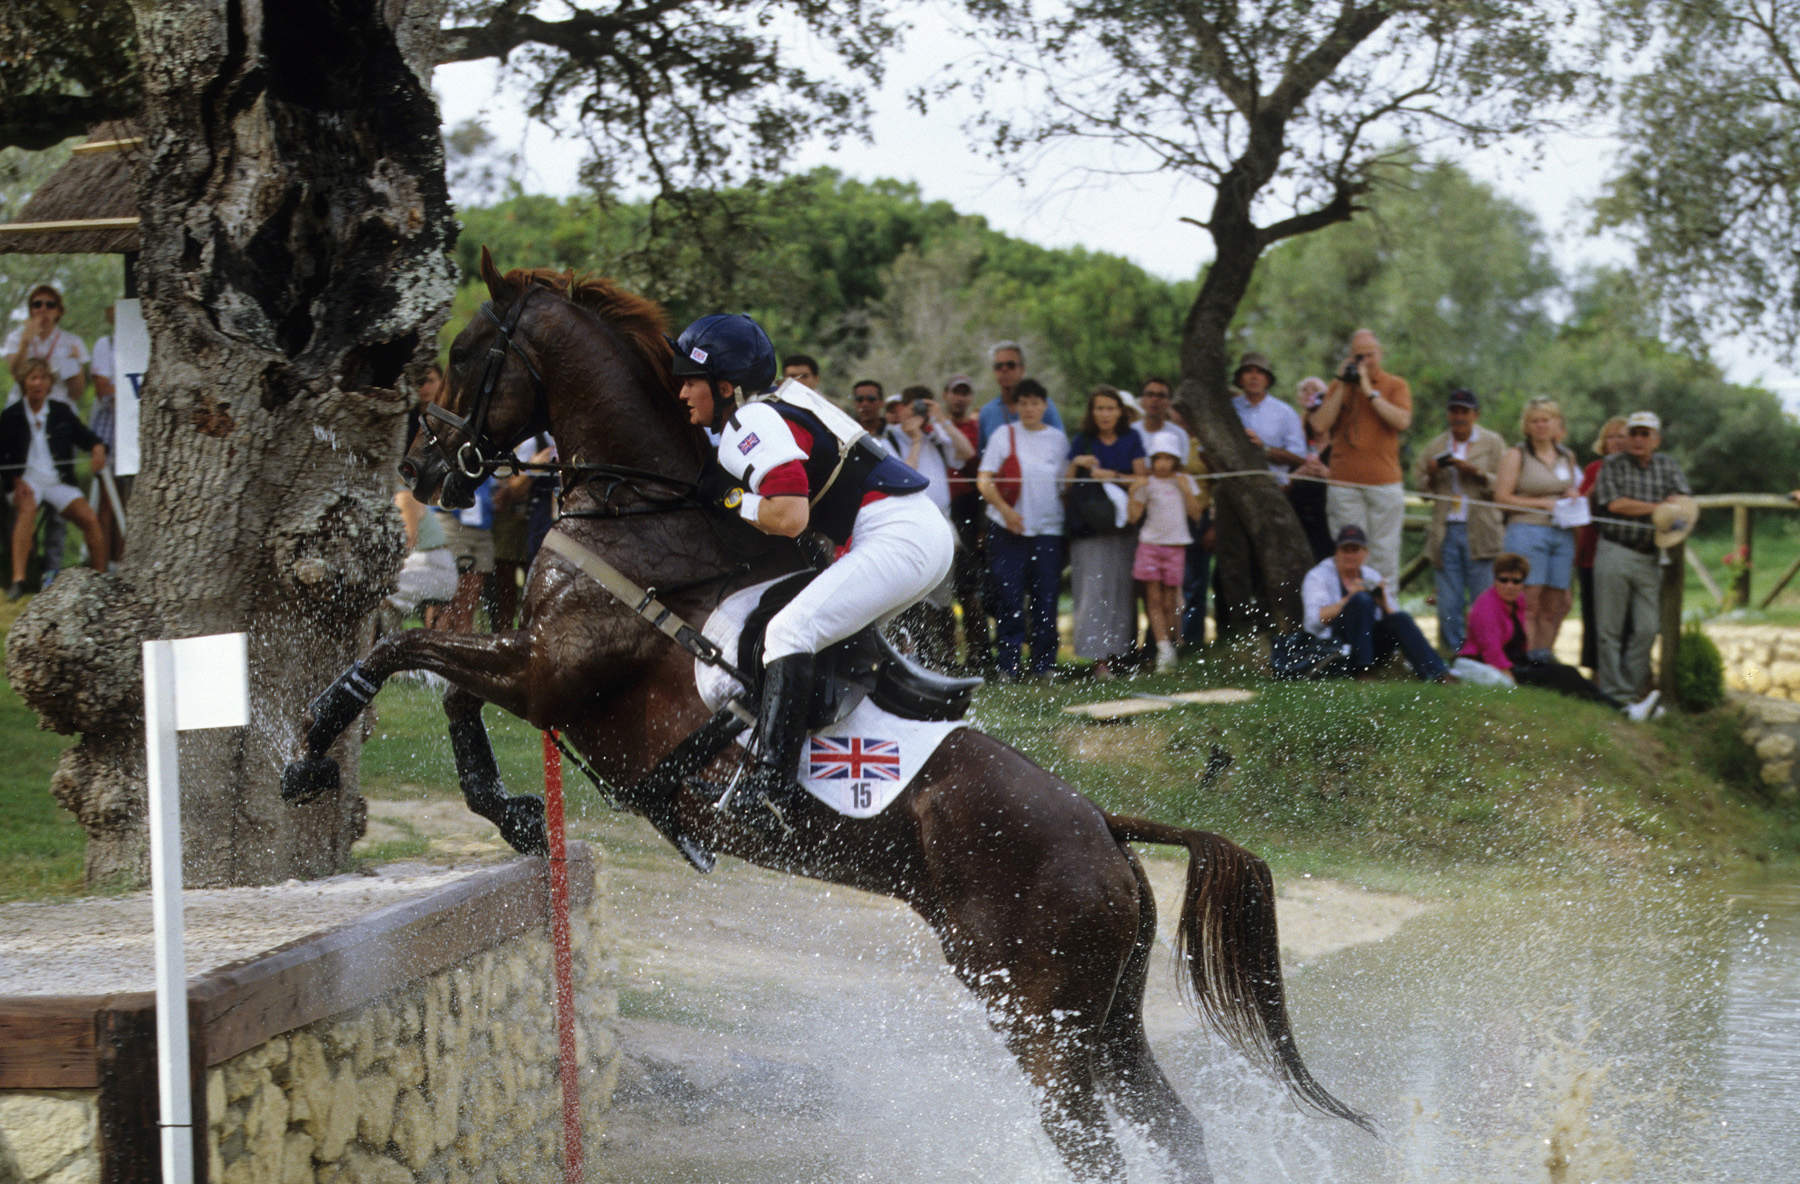 Action shot of rider and horse jumping in competition